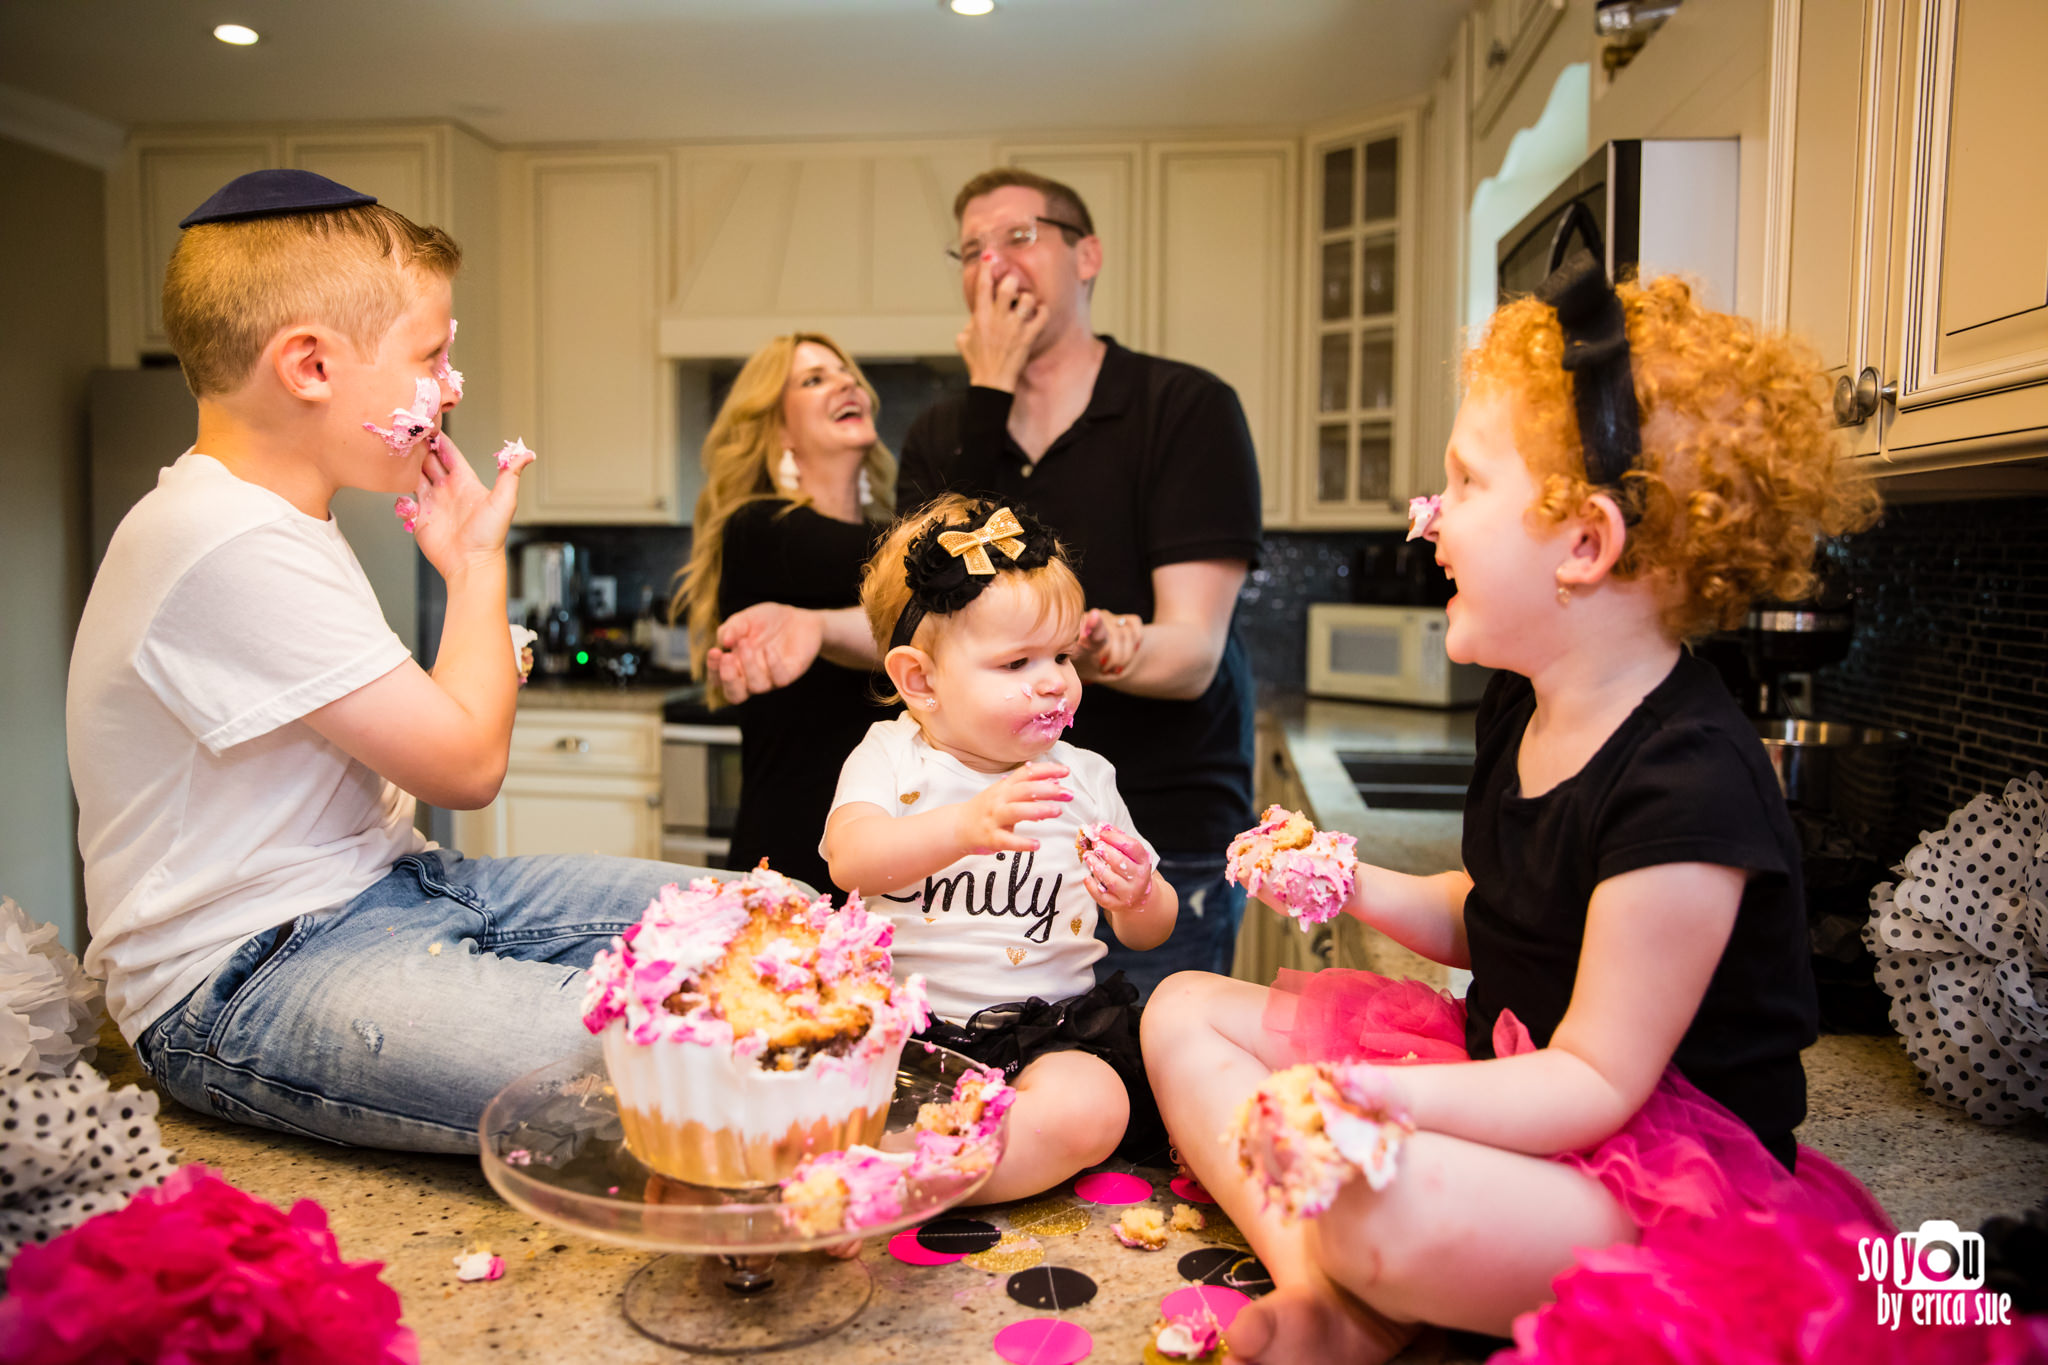 so-you-by-erica-sue-hollywood-fl-photographer-in-home-lifestyle-1st-birthday-cake-smash-4024.jpg